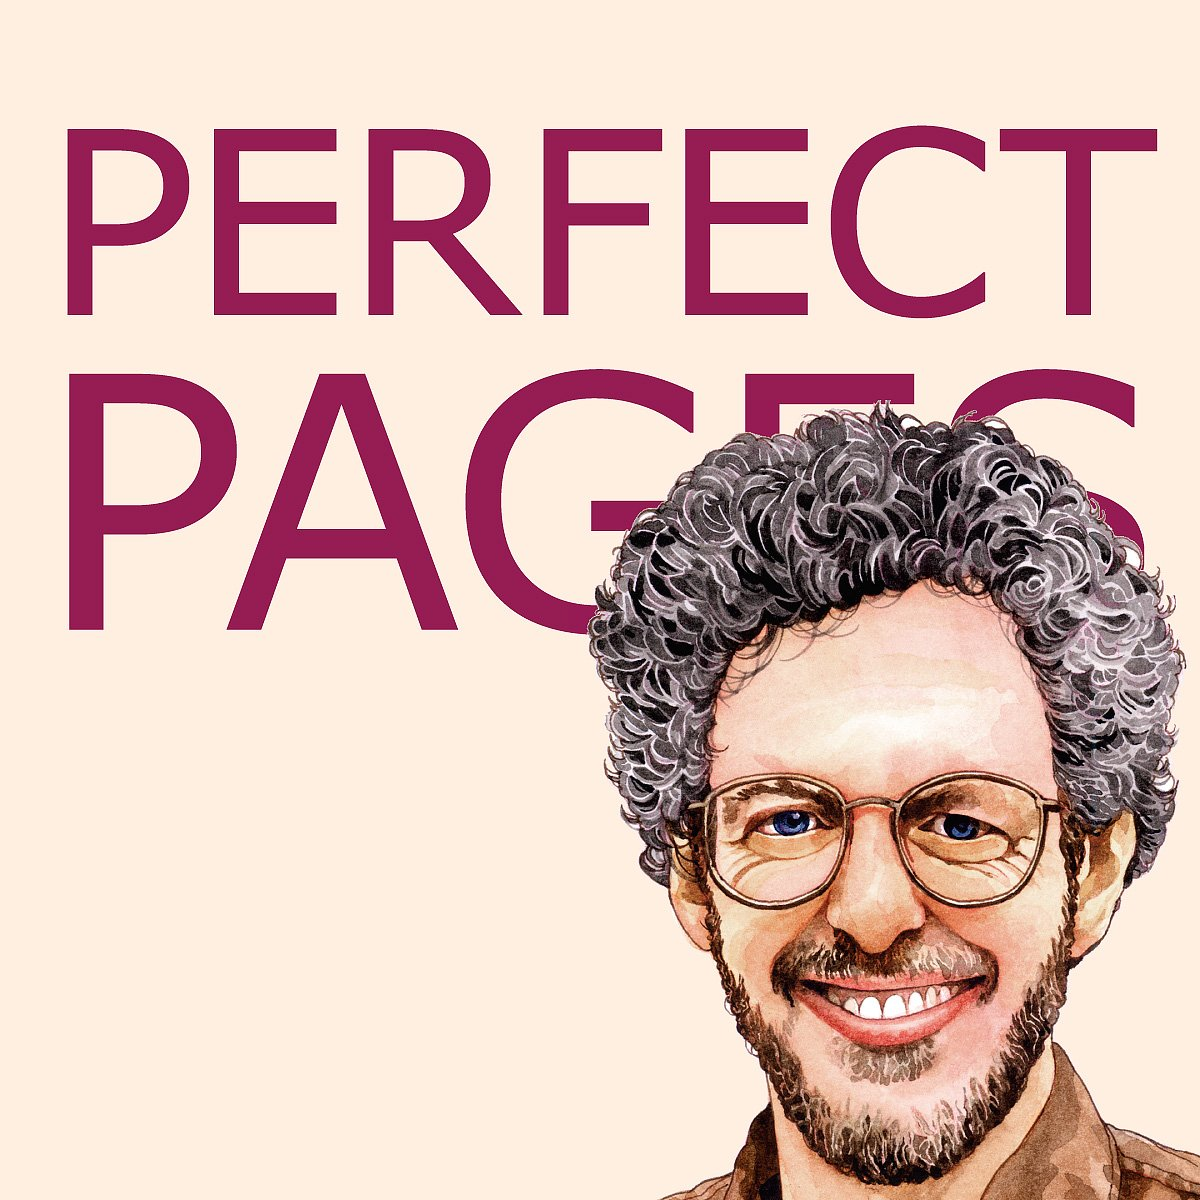 Download Perfect Pages: Self Publishing with Microsoft Word, or How to Design and Format Your Books for Print on Demand (Word 97-2003 for Windows, Word 2004 for Mac) pdf